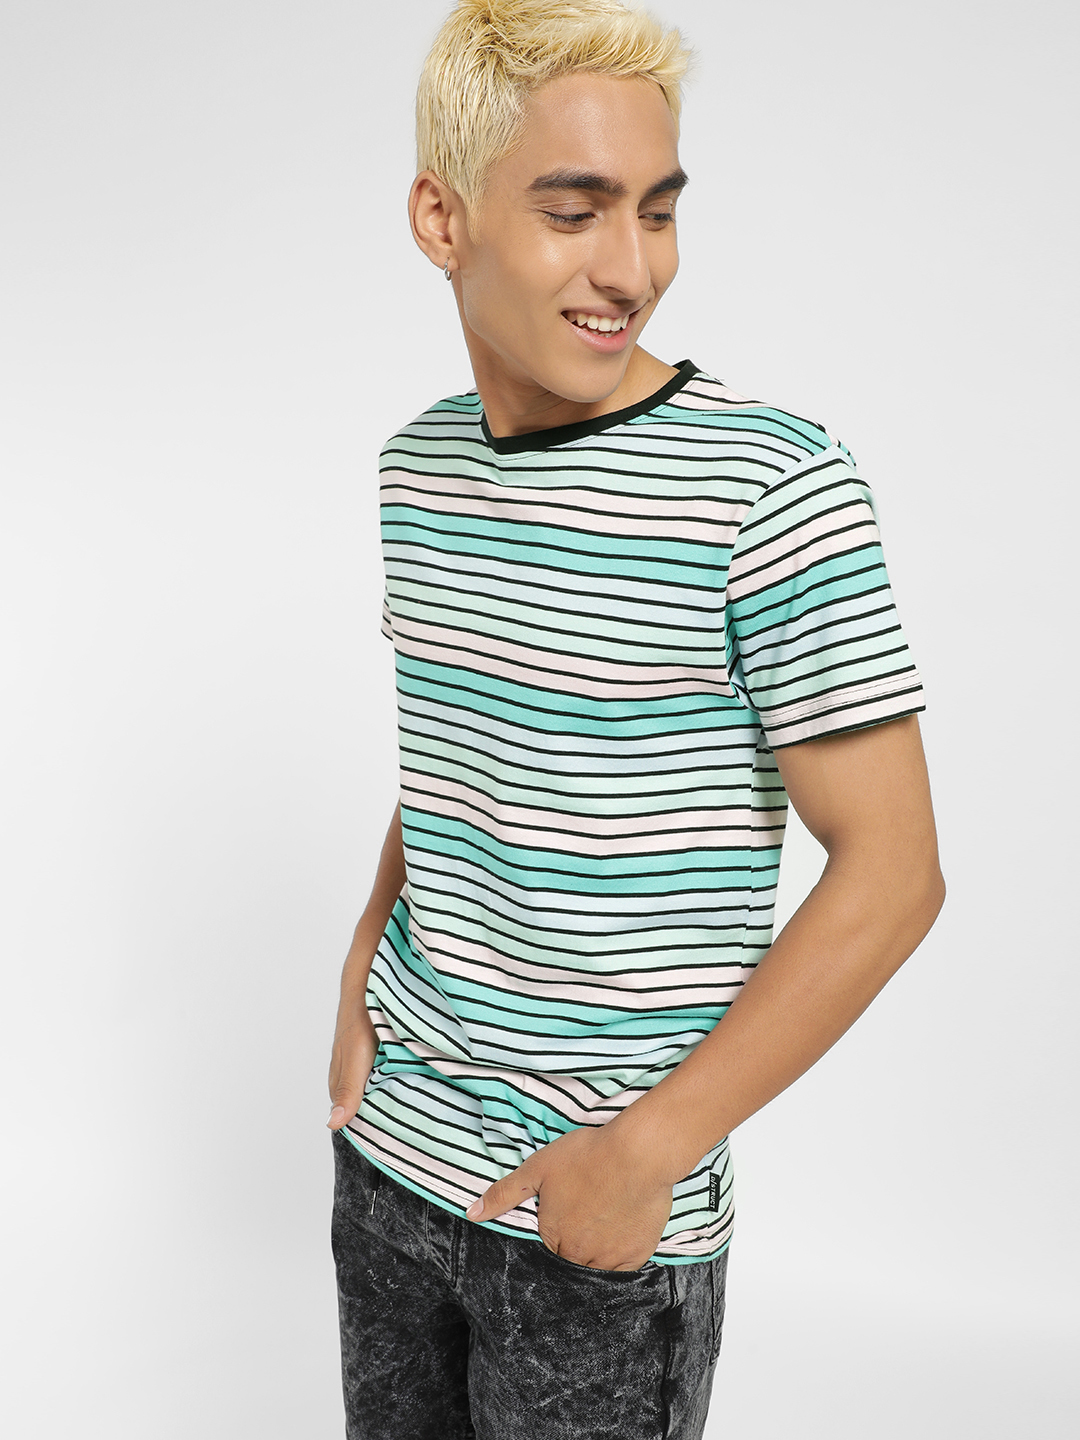 D-Struct Multi Horizontal Stripe Short Sleeve T-Shirt 1